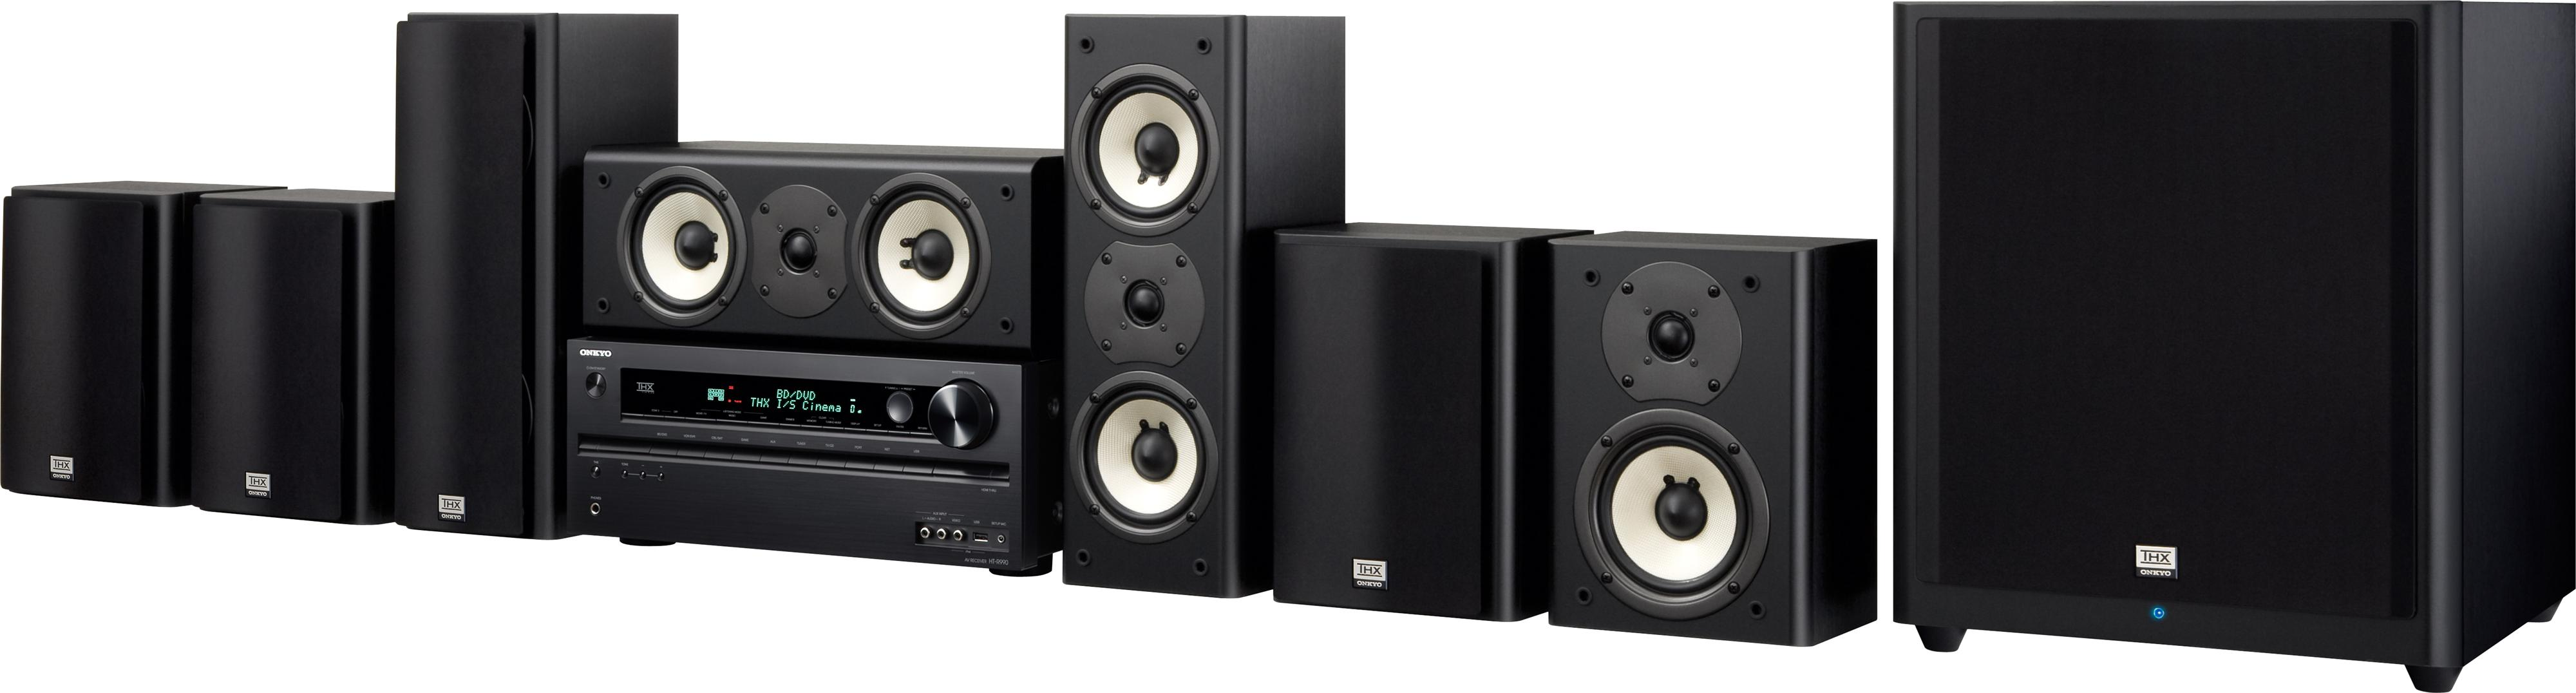 Onkyo Home Theater Systems 7.1 Channel Home Theater System - Item Number: HT-S9400THX